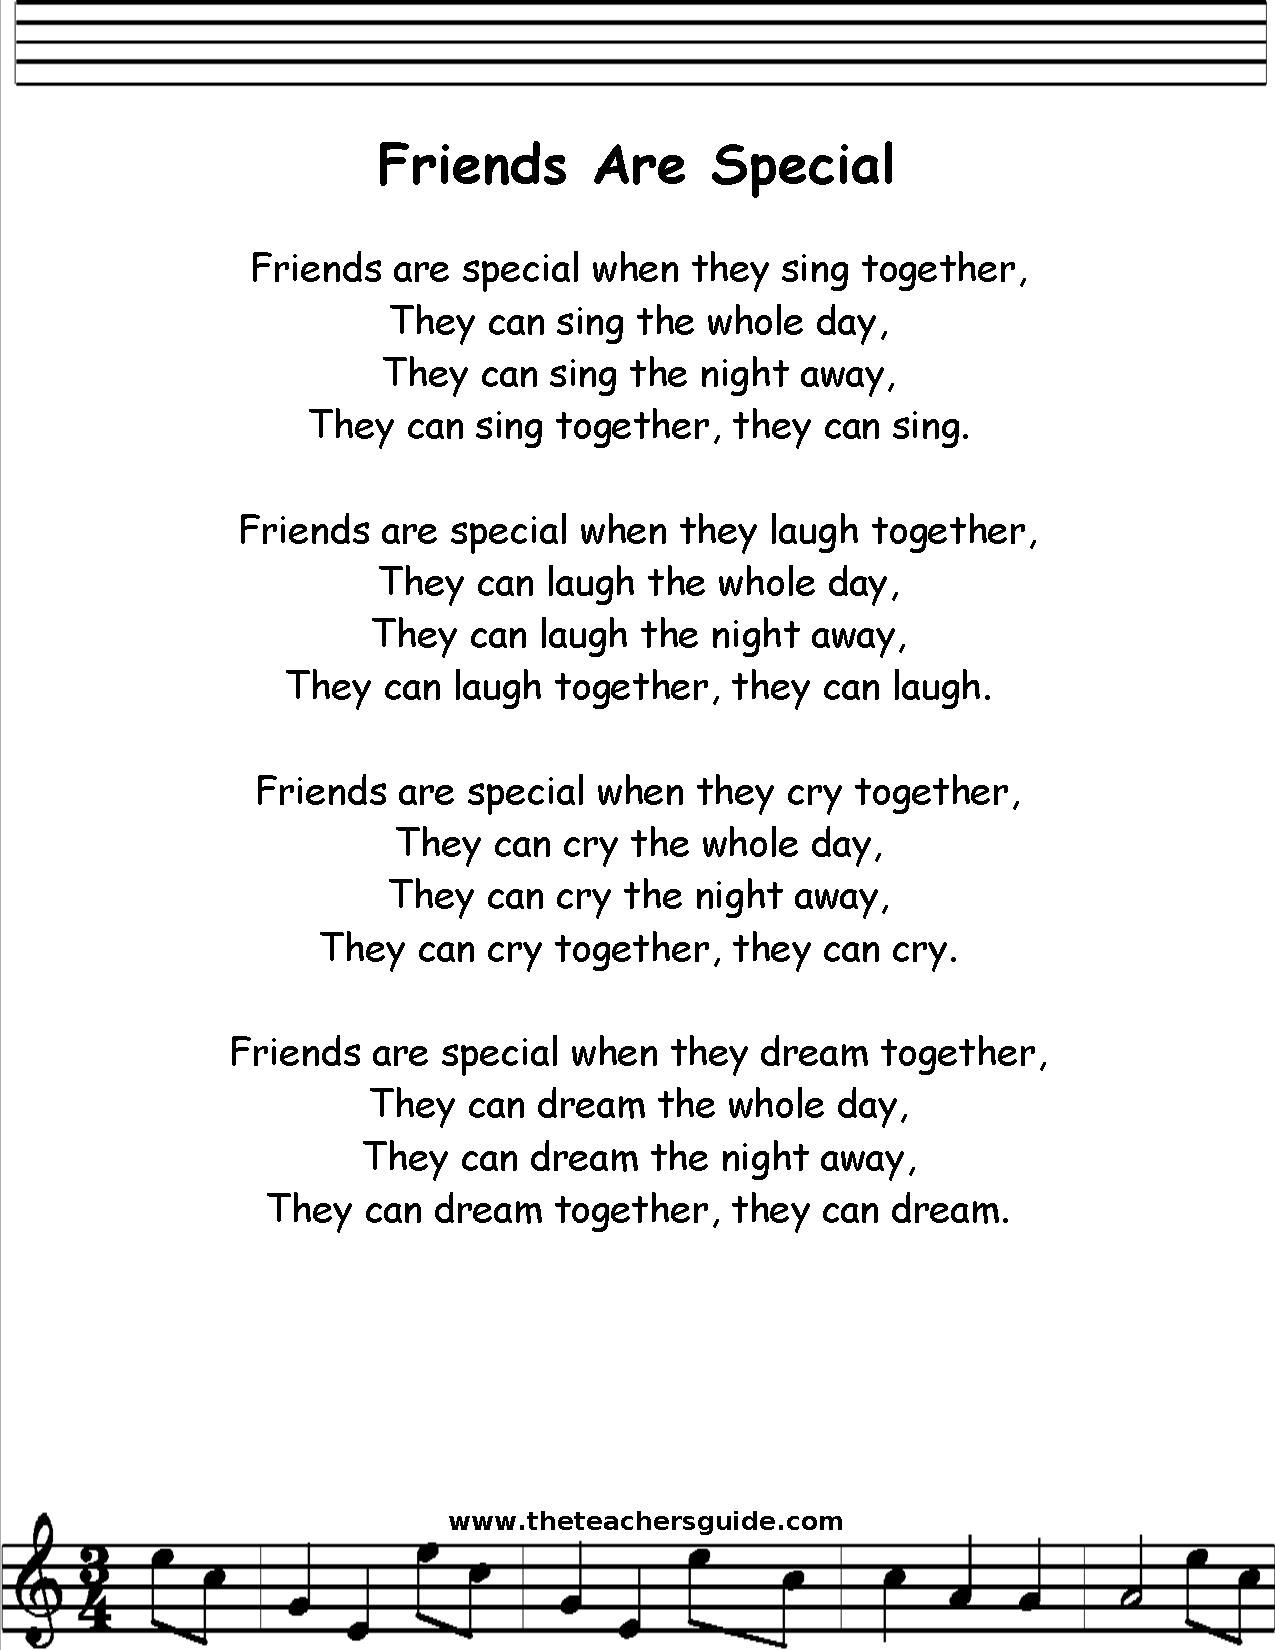 Friend Are Special Lyric Printout Midi And Video Song Lyrics Teaching Paraphrasing With